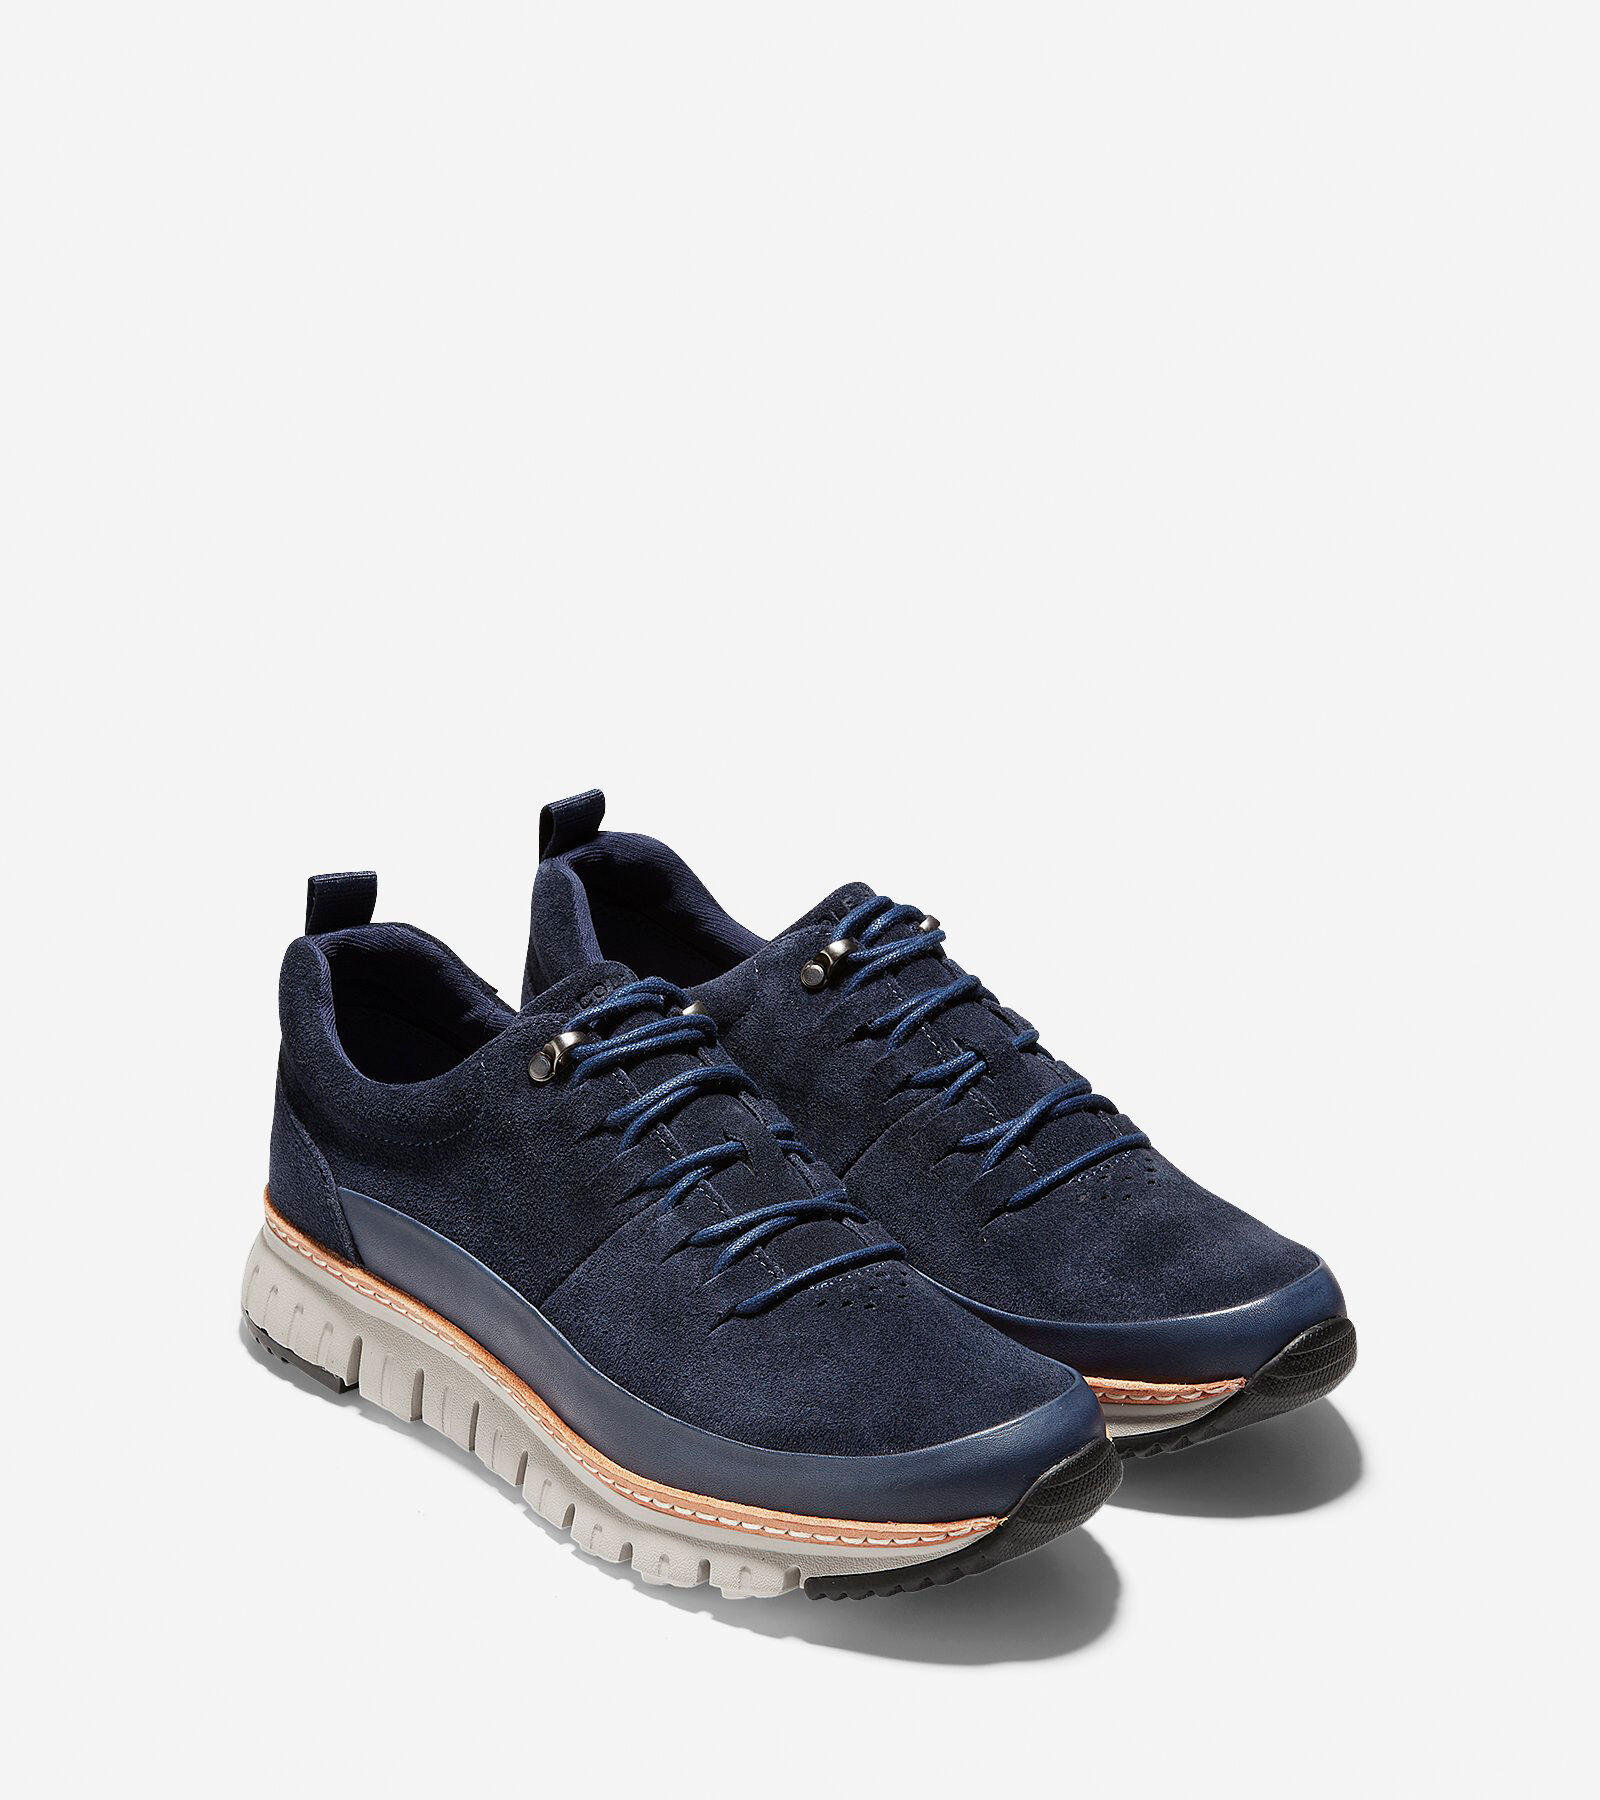 Blueberry Suede-natural-dove